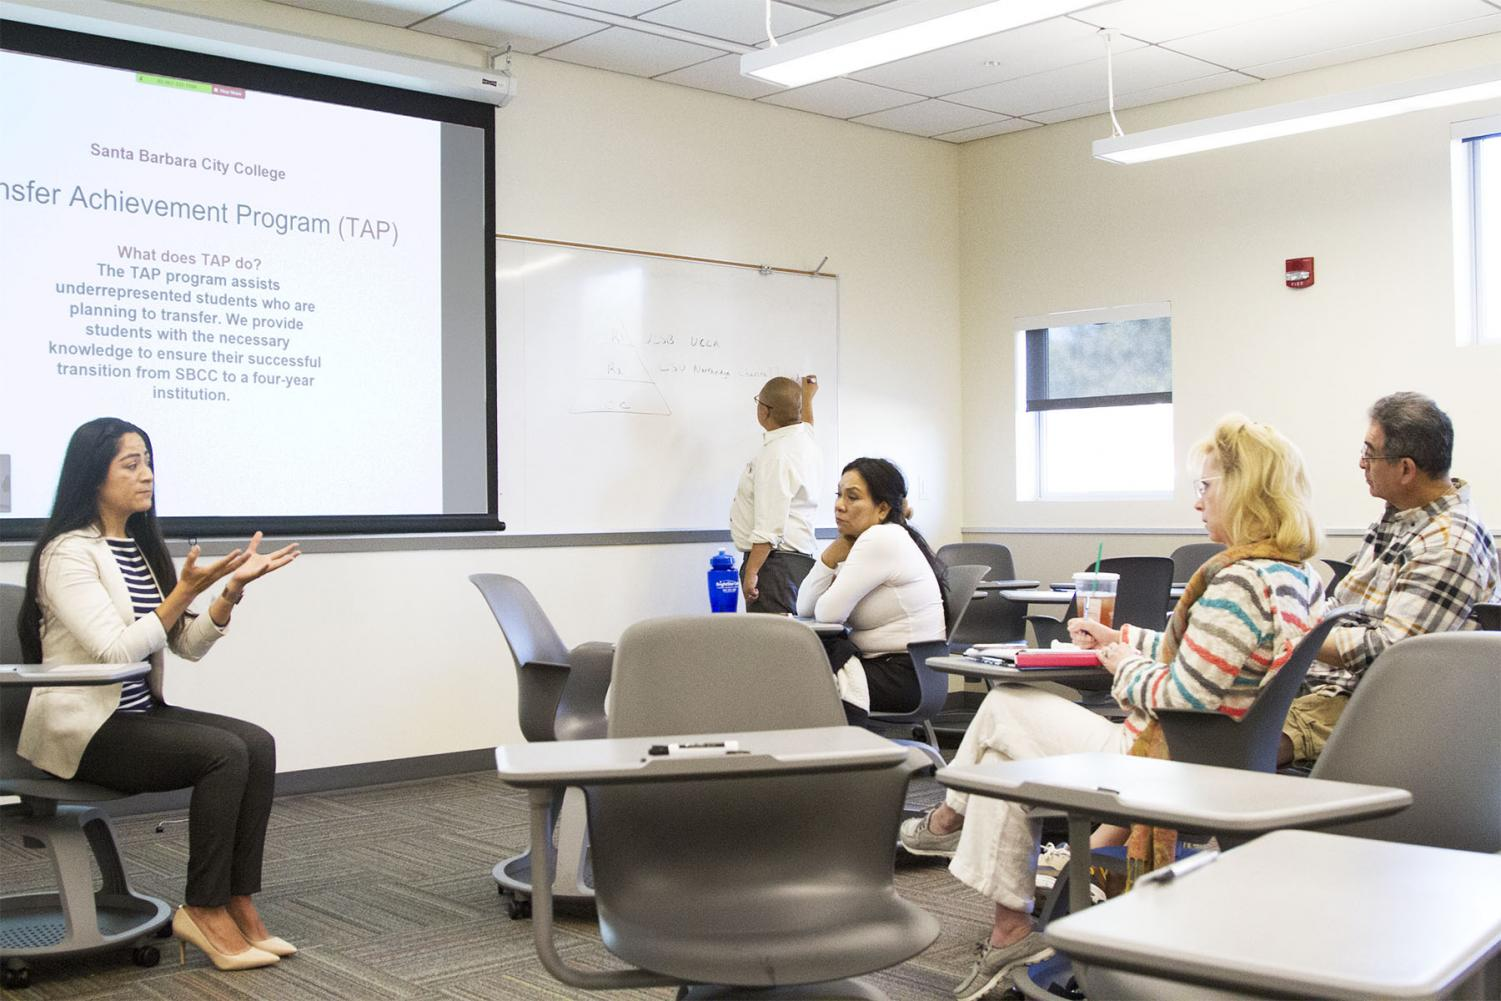 Jenny Erika Barco talks to possible future City College night students about the amenities the program will offer on Saturday, April 6, 2019 in the West Campus Center Room 121 at City College in Santa Barbara, Calif.